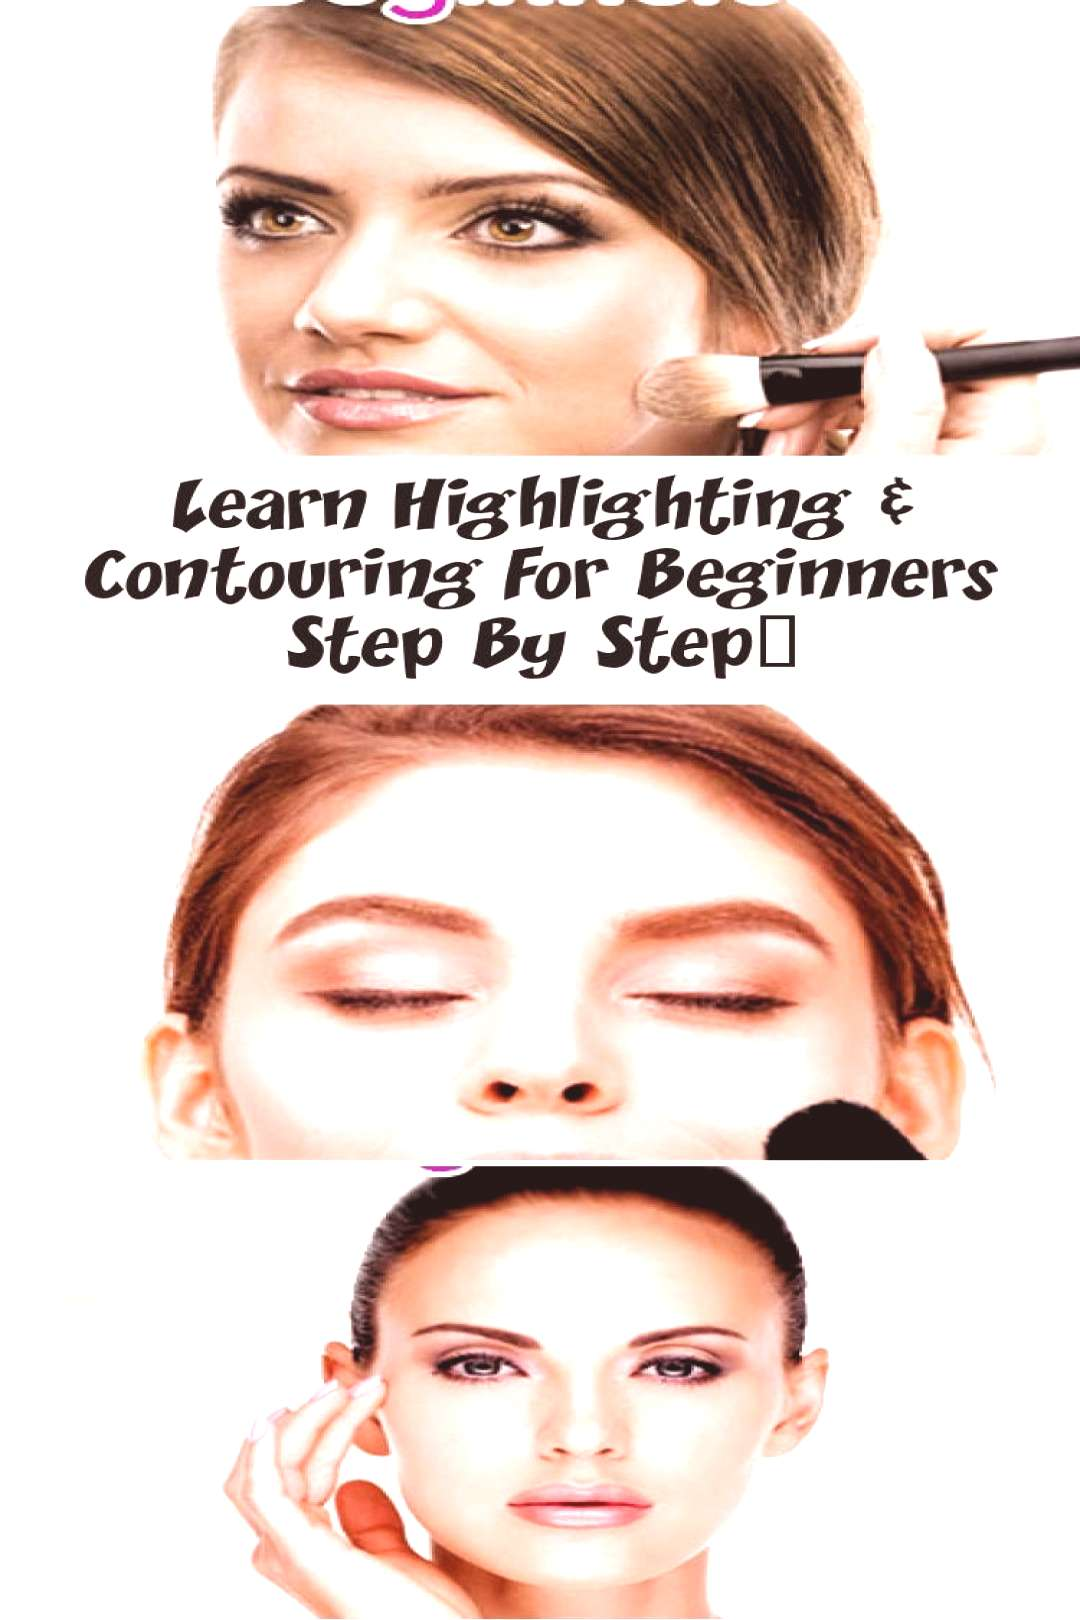 Learn Highlighting amp Contouring For Beginners Step By Step… – Makeup – Highli… – Makeup